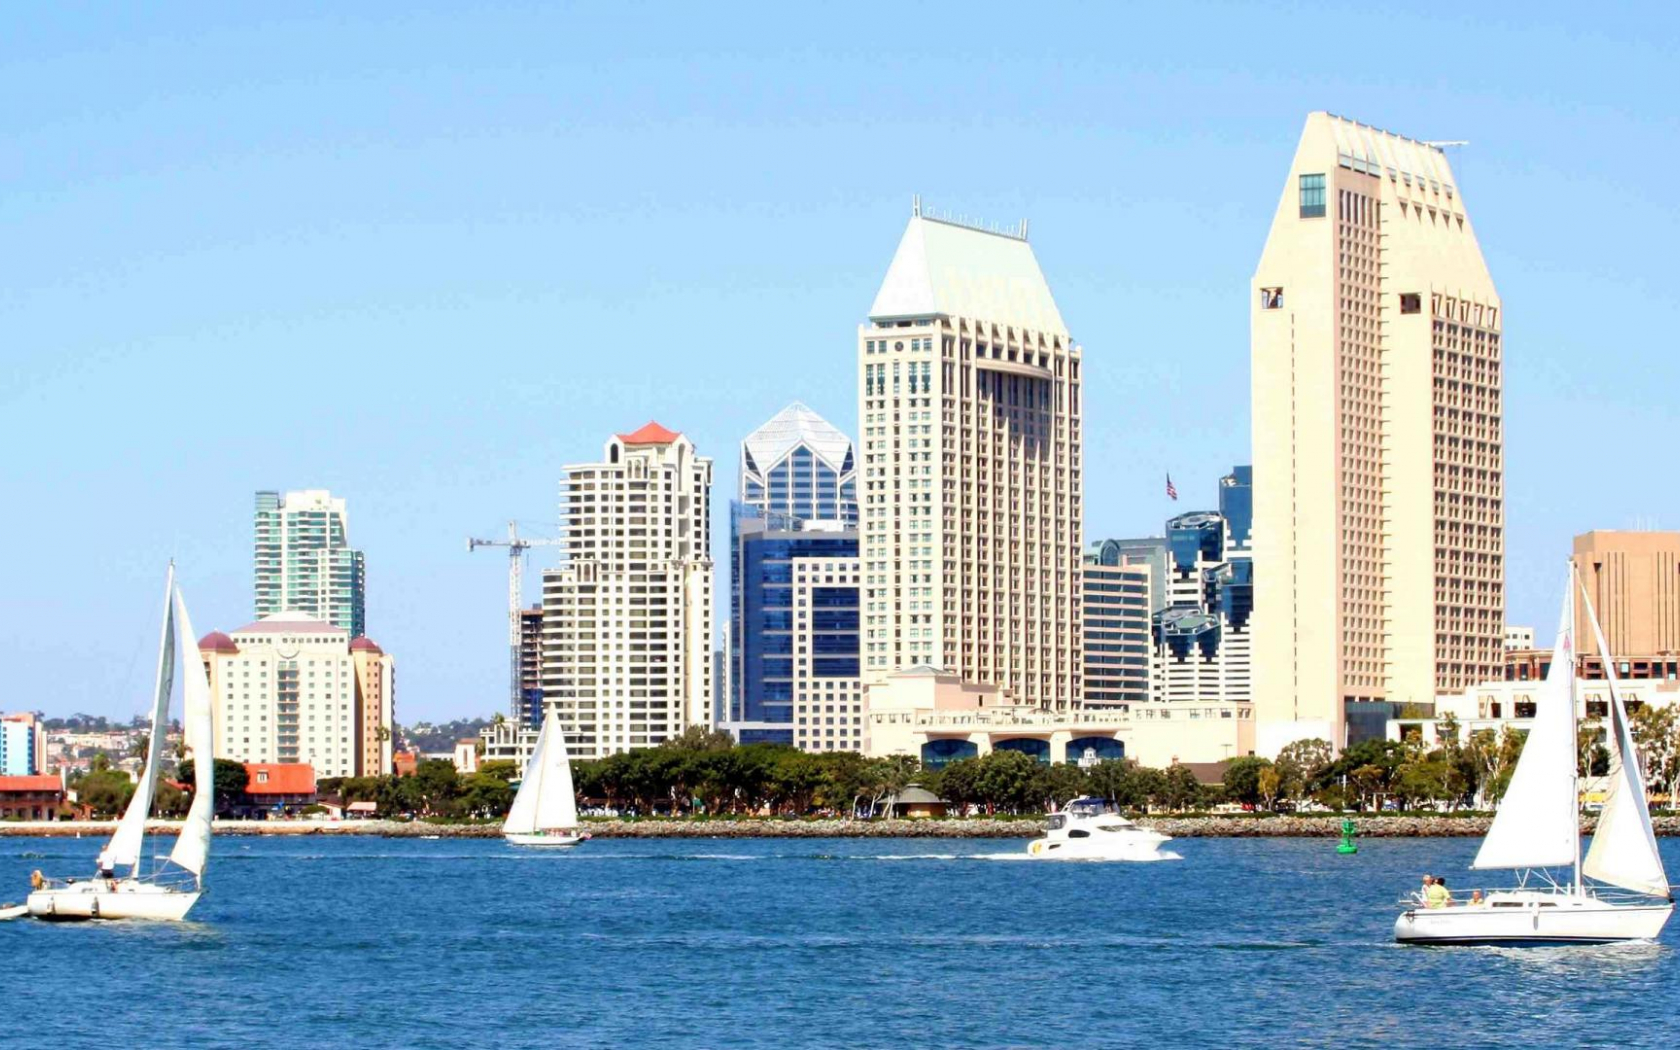 Free Download San Diego Wallpaper High Definition Wallpapers Desktop Backgrounds 1920x1080 For Your Desktop Mobile Tablet Explore 36 San Diego Hd Wallpaper Wallpaper San Diego San Diego Pictures Wallpaper